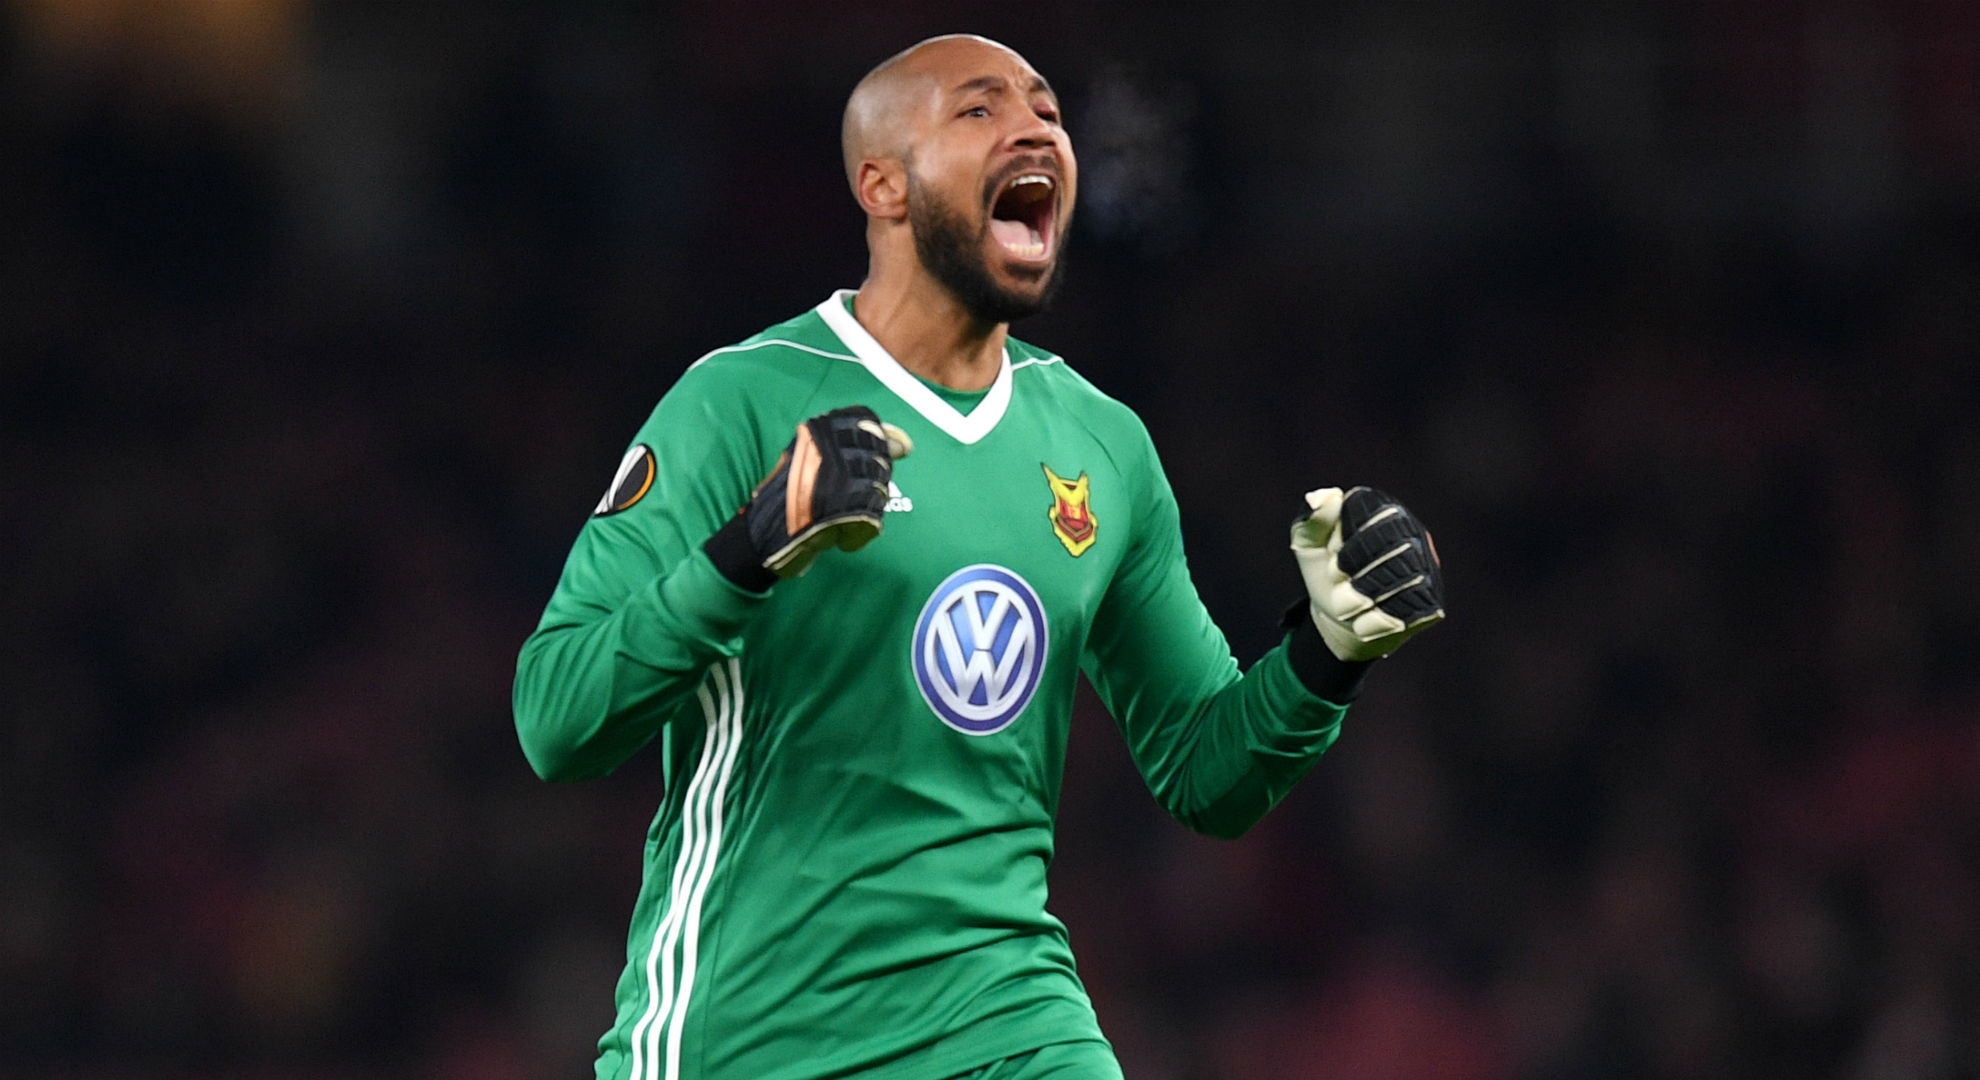 Swedish referee banned for offensive remarks against Guinea goalkeeper Aly Keita